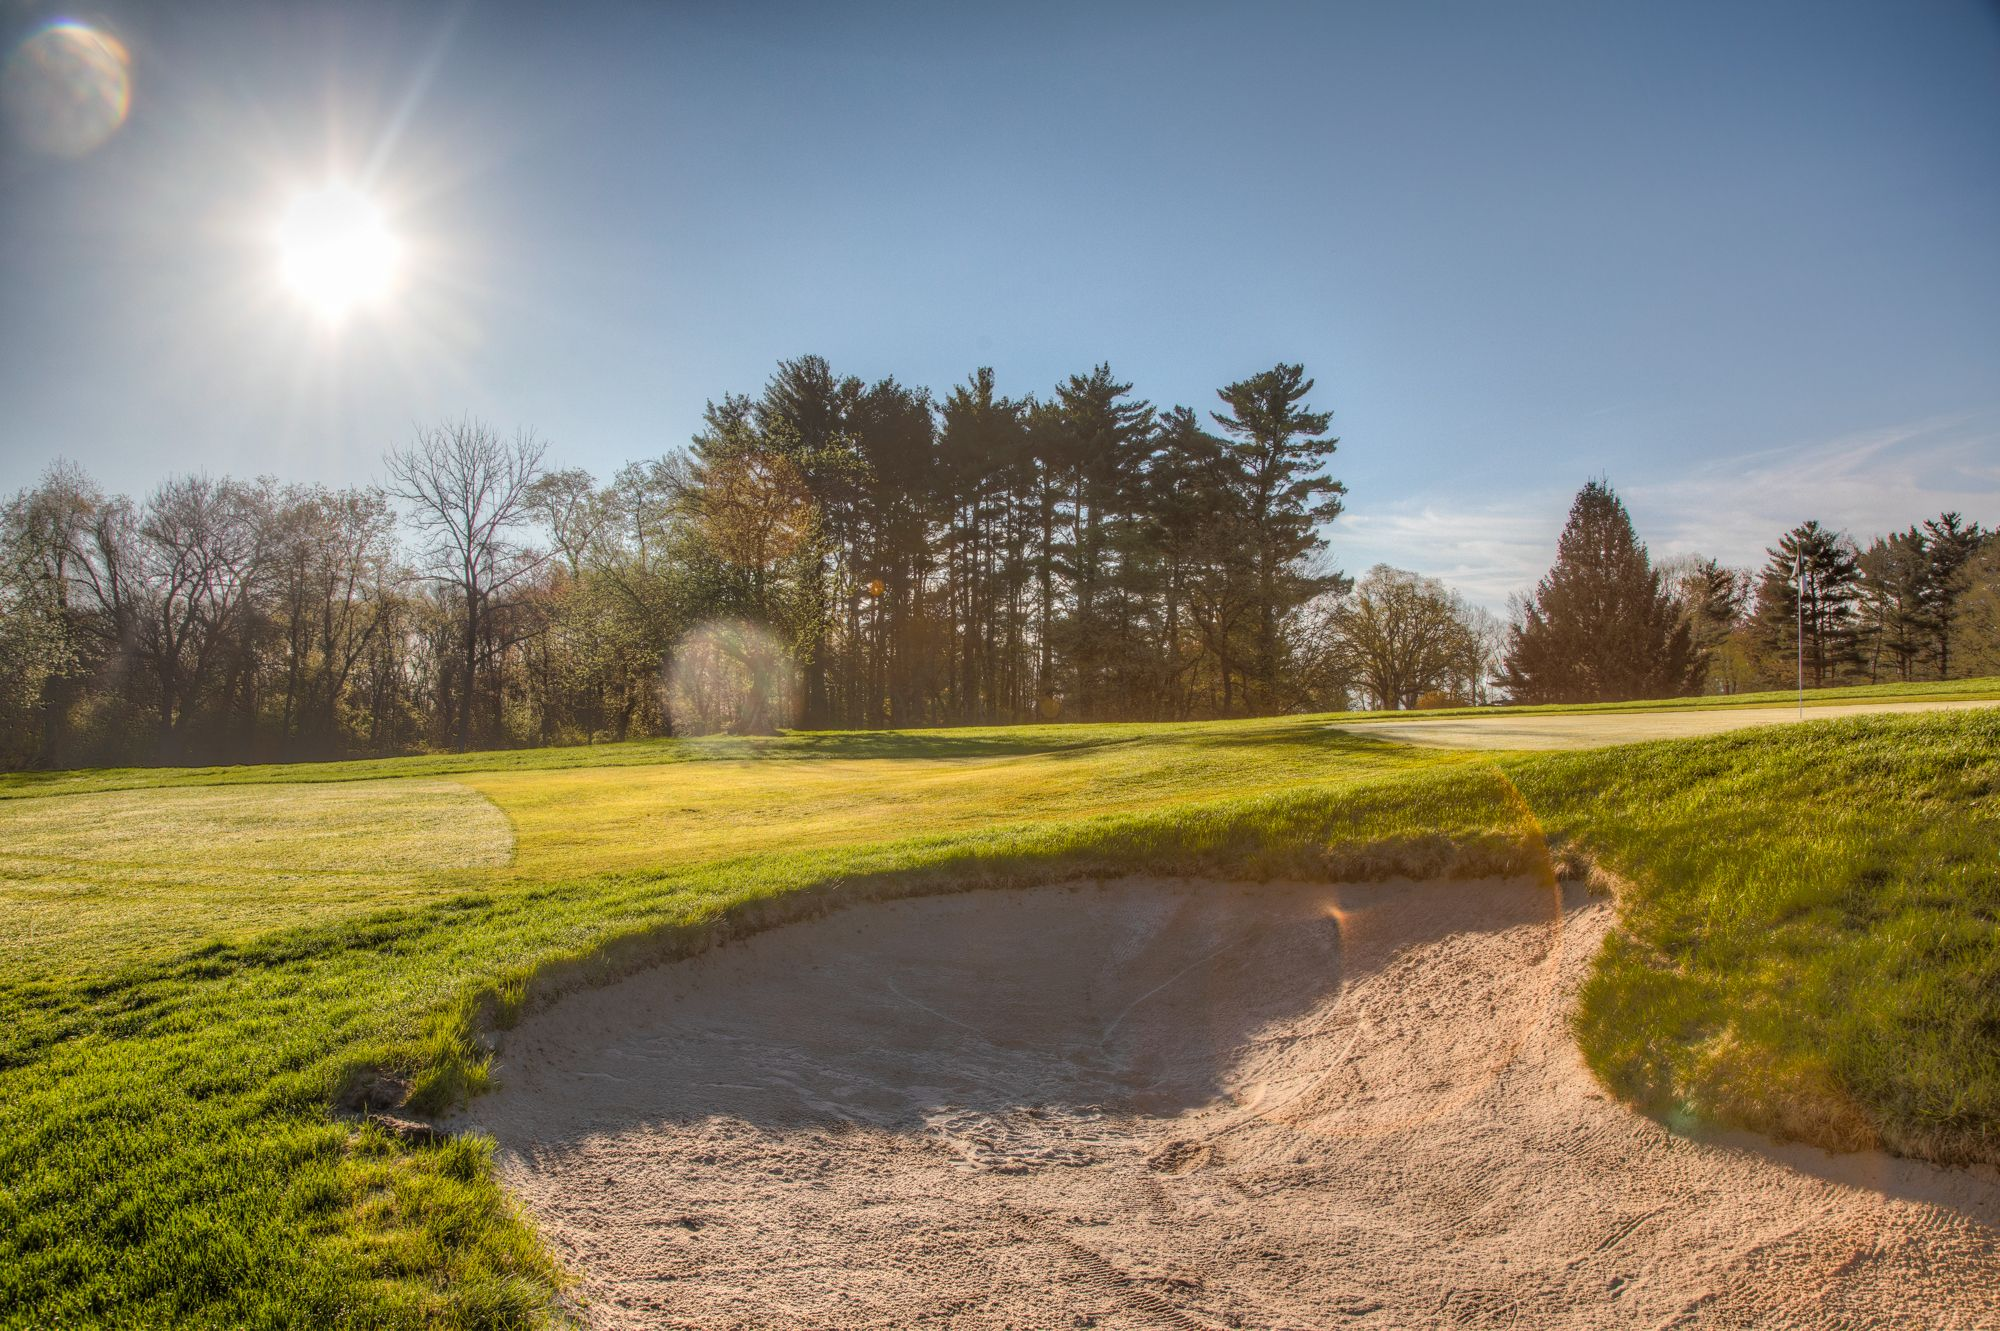 beautiful scenery of hole number 13 at Wiltwyck in Kingston NY